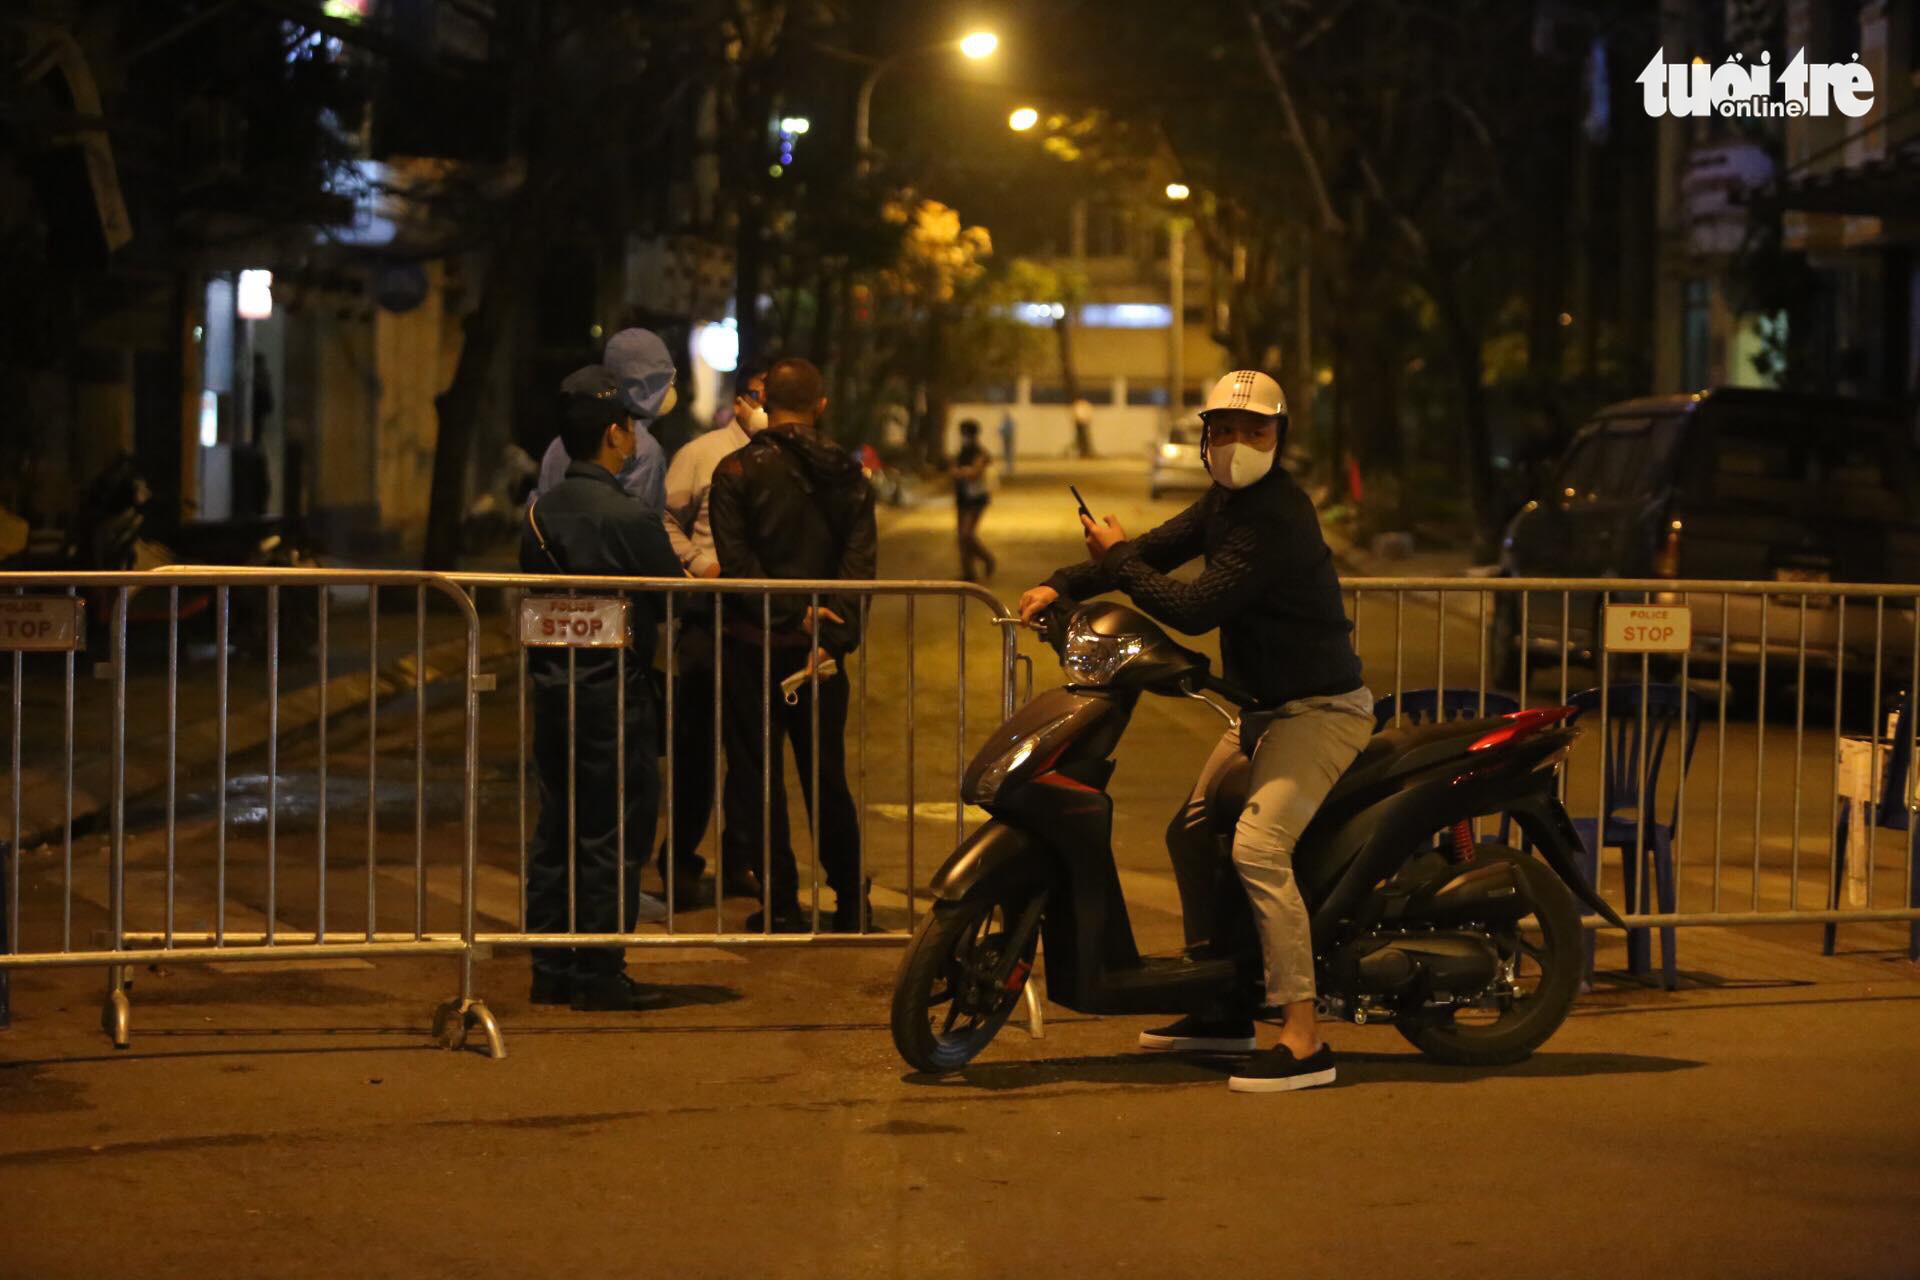 Police fence off a street in Hanoi, March 6, 2020. Photo: Chi Tue / Tuoi Tre